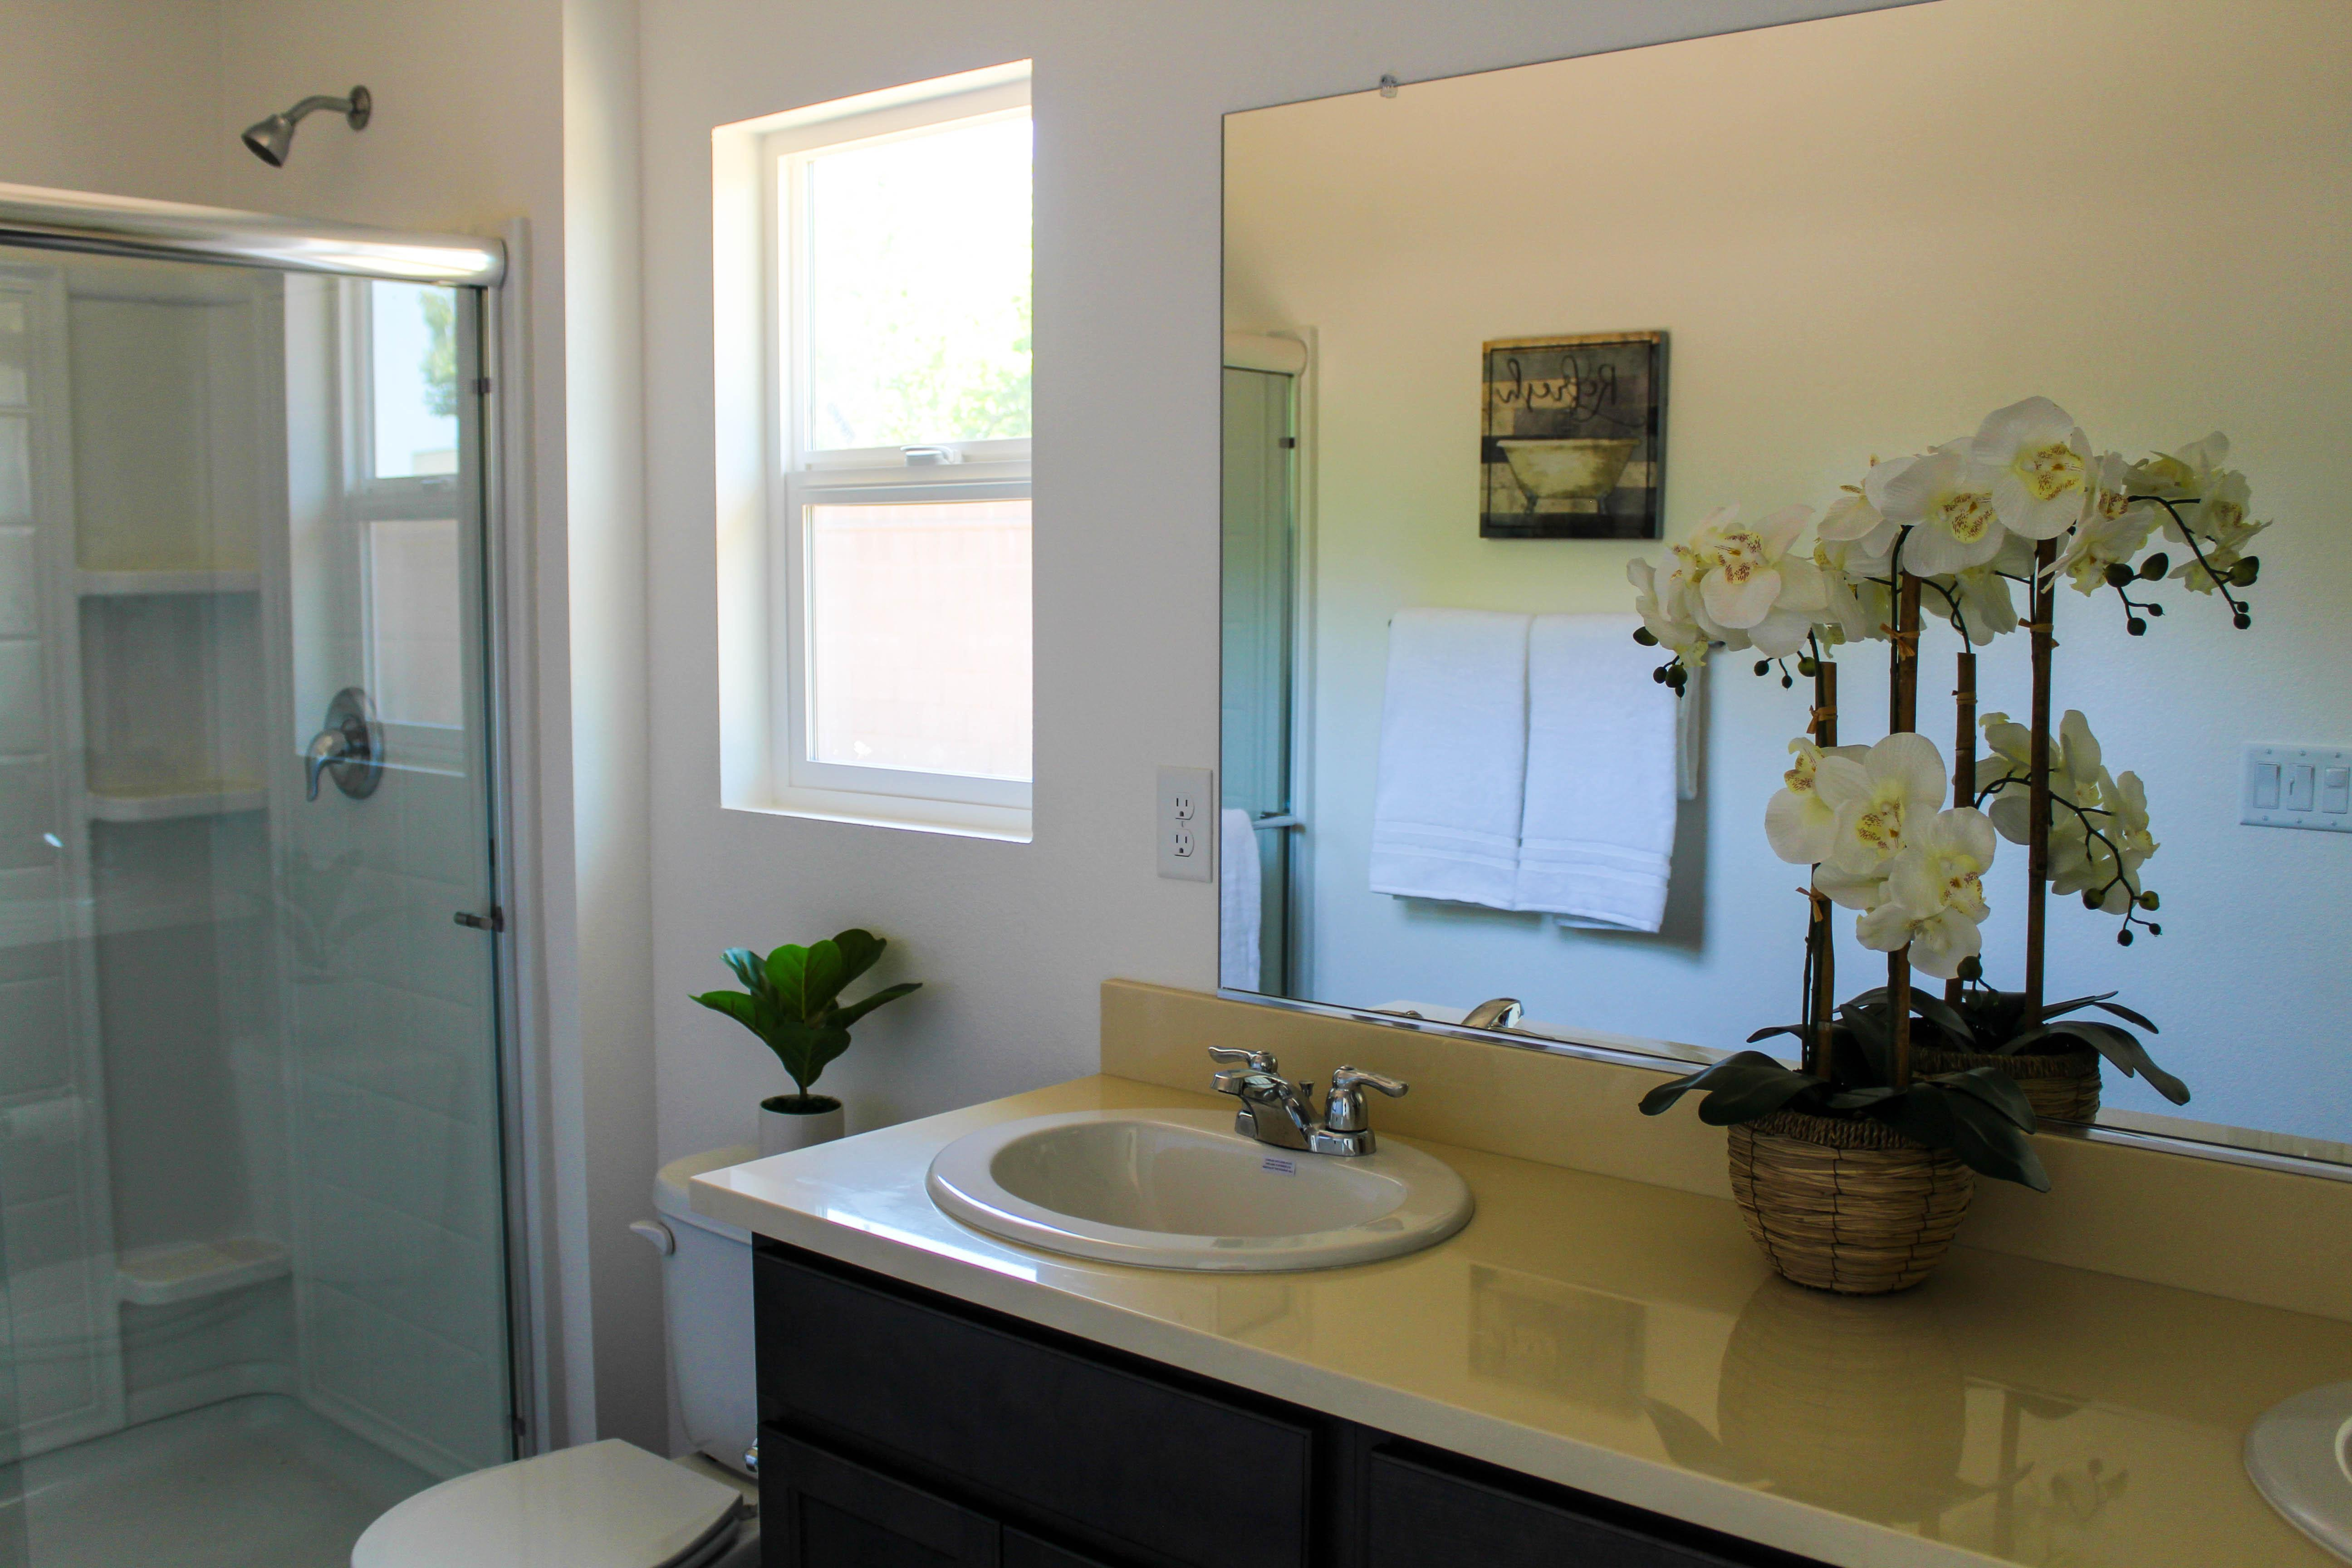 Bathroom featured in the 2C By Crowne Communities in Chico, CA